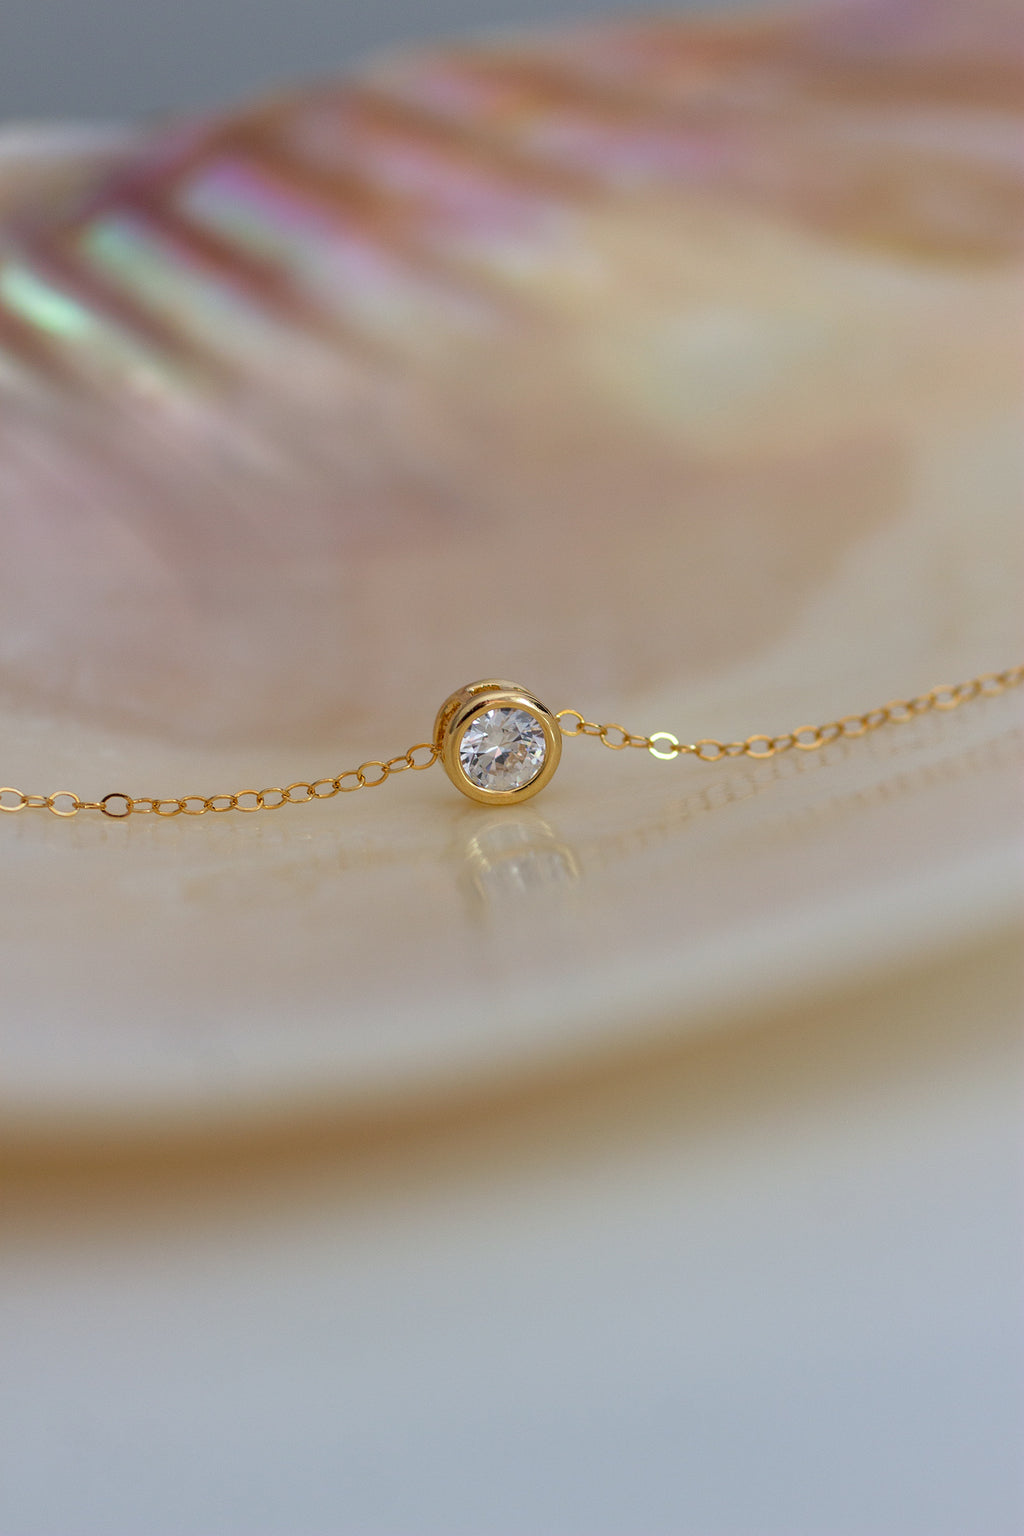 Minimalist Suspended Solitaire Necklace - Christine Elizabeth Jewelry